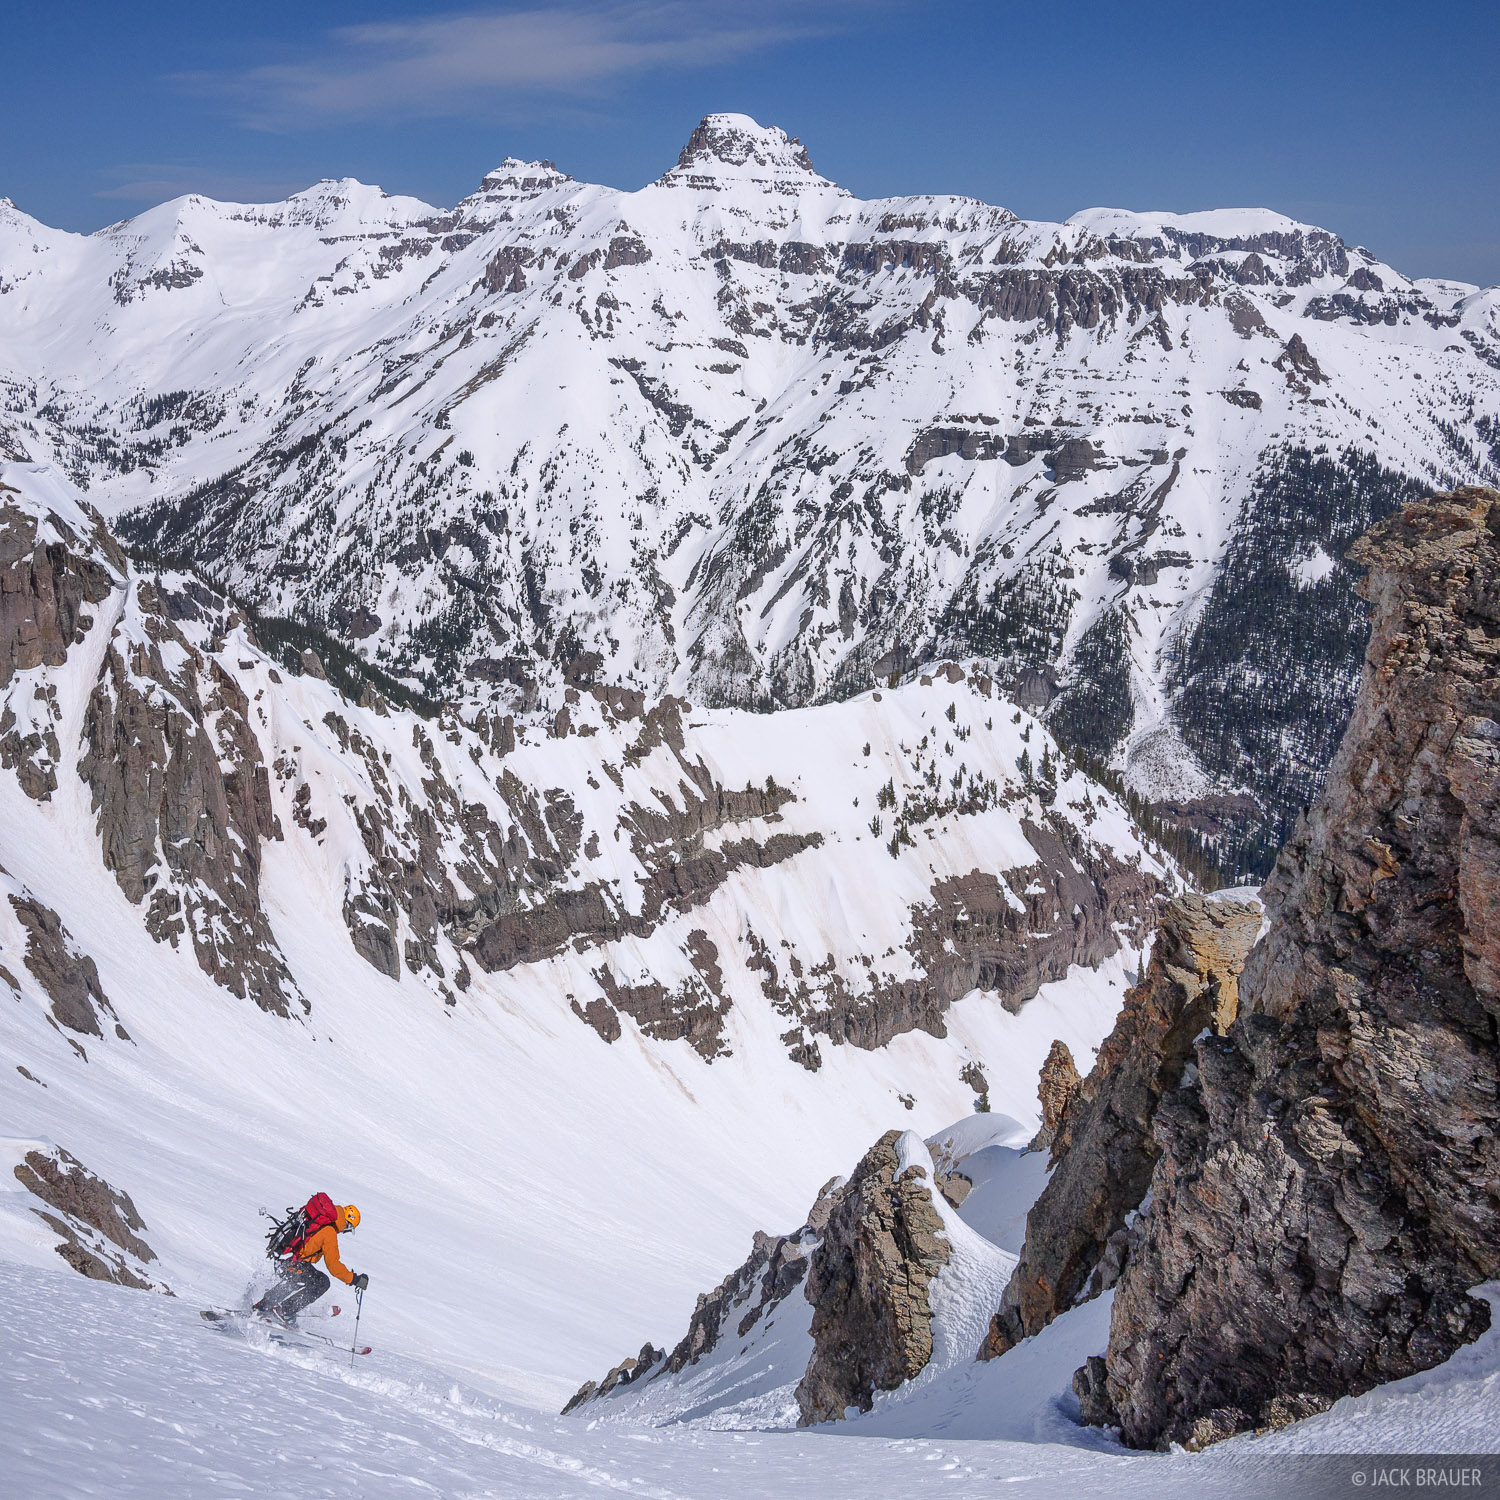 Potosi Peak, United States Mountain, Sneffels Range, San Juan Mountains, Colorado, May, skiing, photo